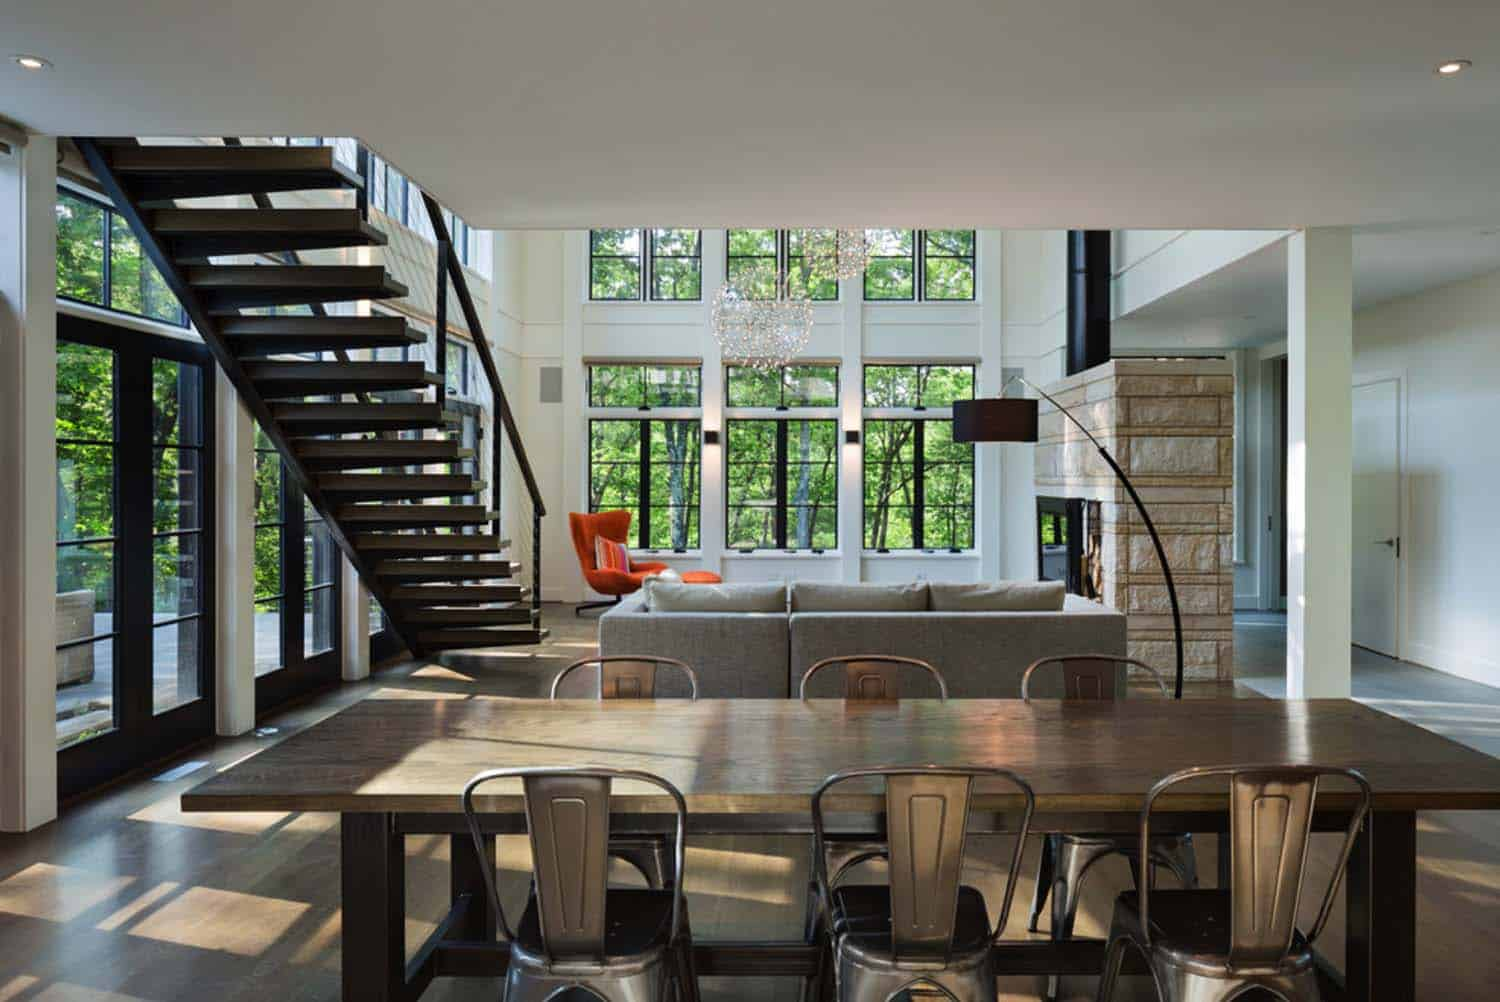 Modern Rustic House-Studio Marchetti-13-1 Kindesign